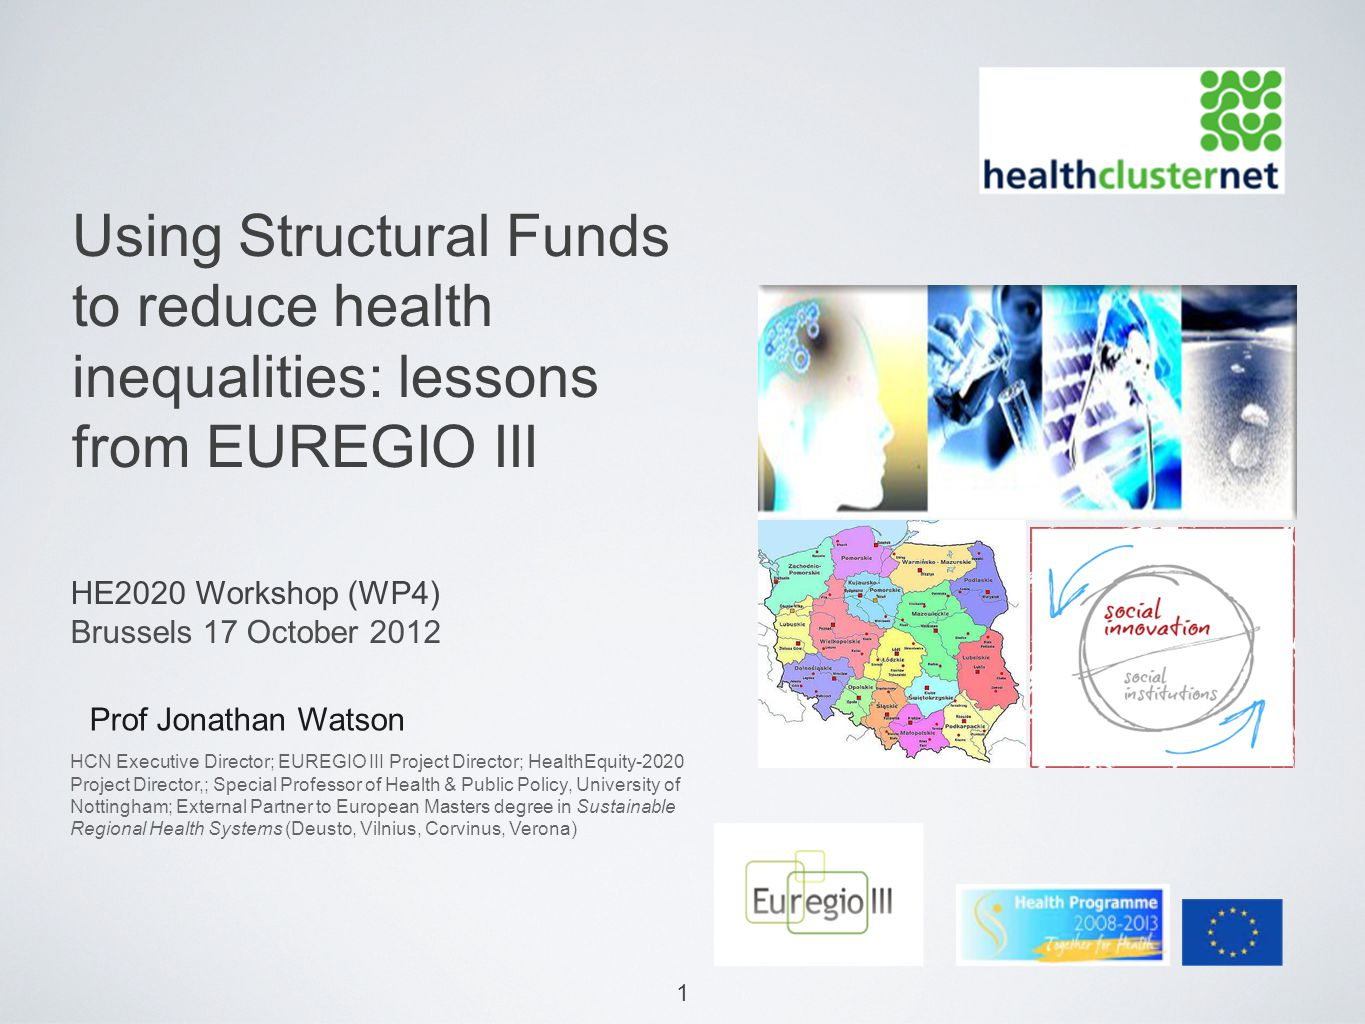 1 Using Structural Funds to reduce health inequalities: lessons from EUREGIO III Prof Jonathan Watson HE2020 Workshop (WP4) Brussels 17 October 2012 HCN Executive Director; EUREGIO III Project Director; HealthEquity-2020 Project Director,; Special Professor of Health & Public Policy, University of Nottingham; External Partner to European Masters degree in Sustainable Regional Health Systems (Deusto, Vilnius, Corvinus, Verona)